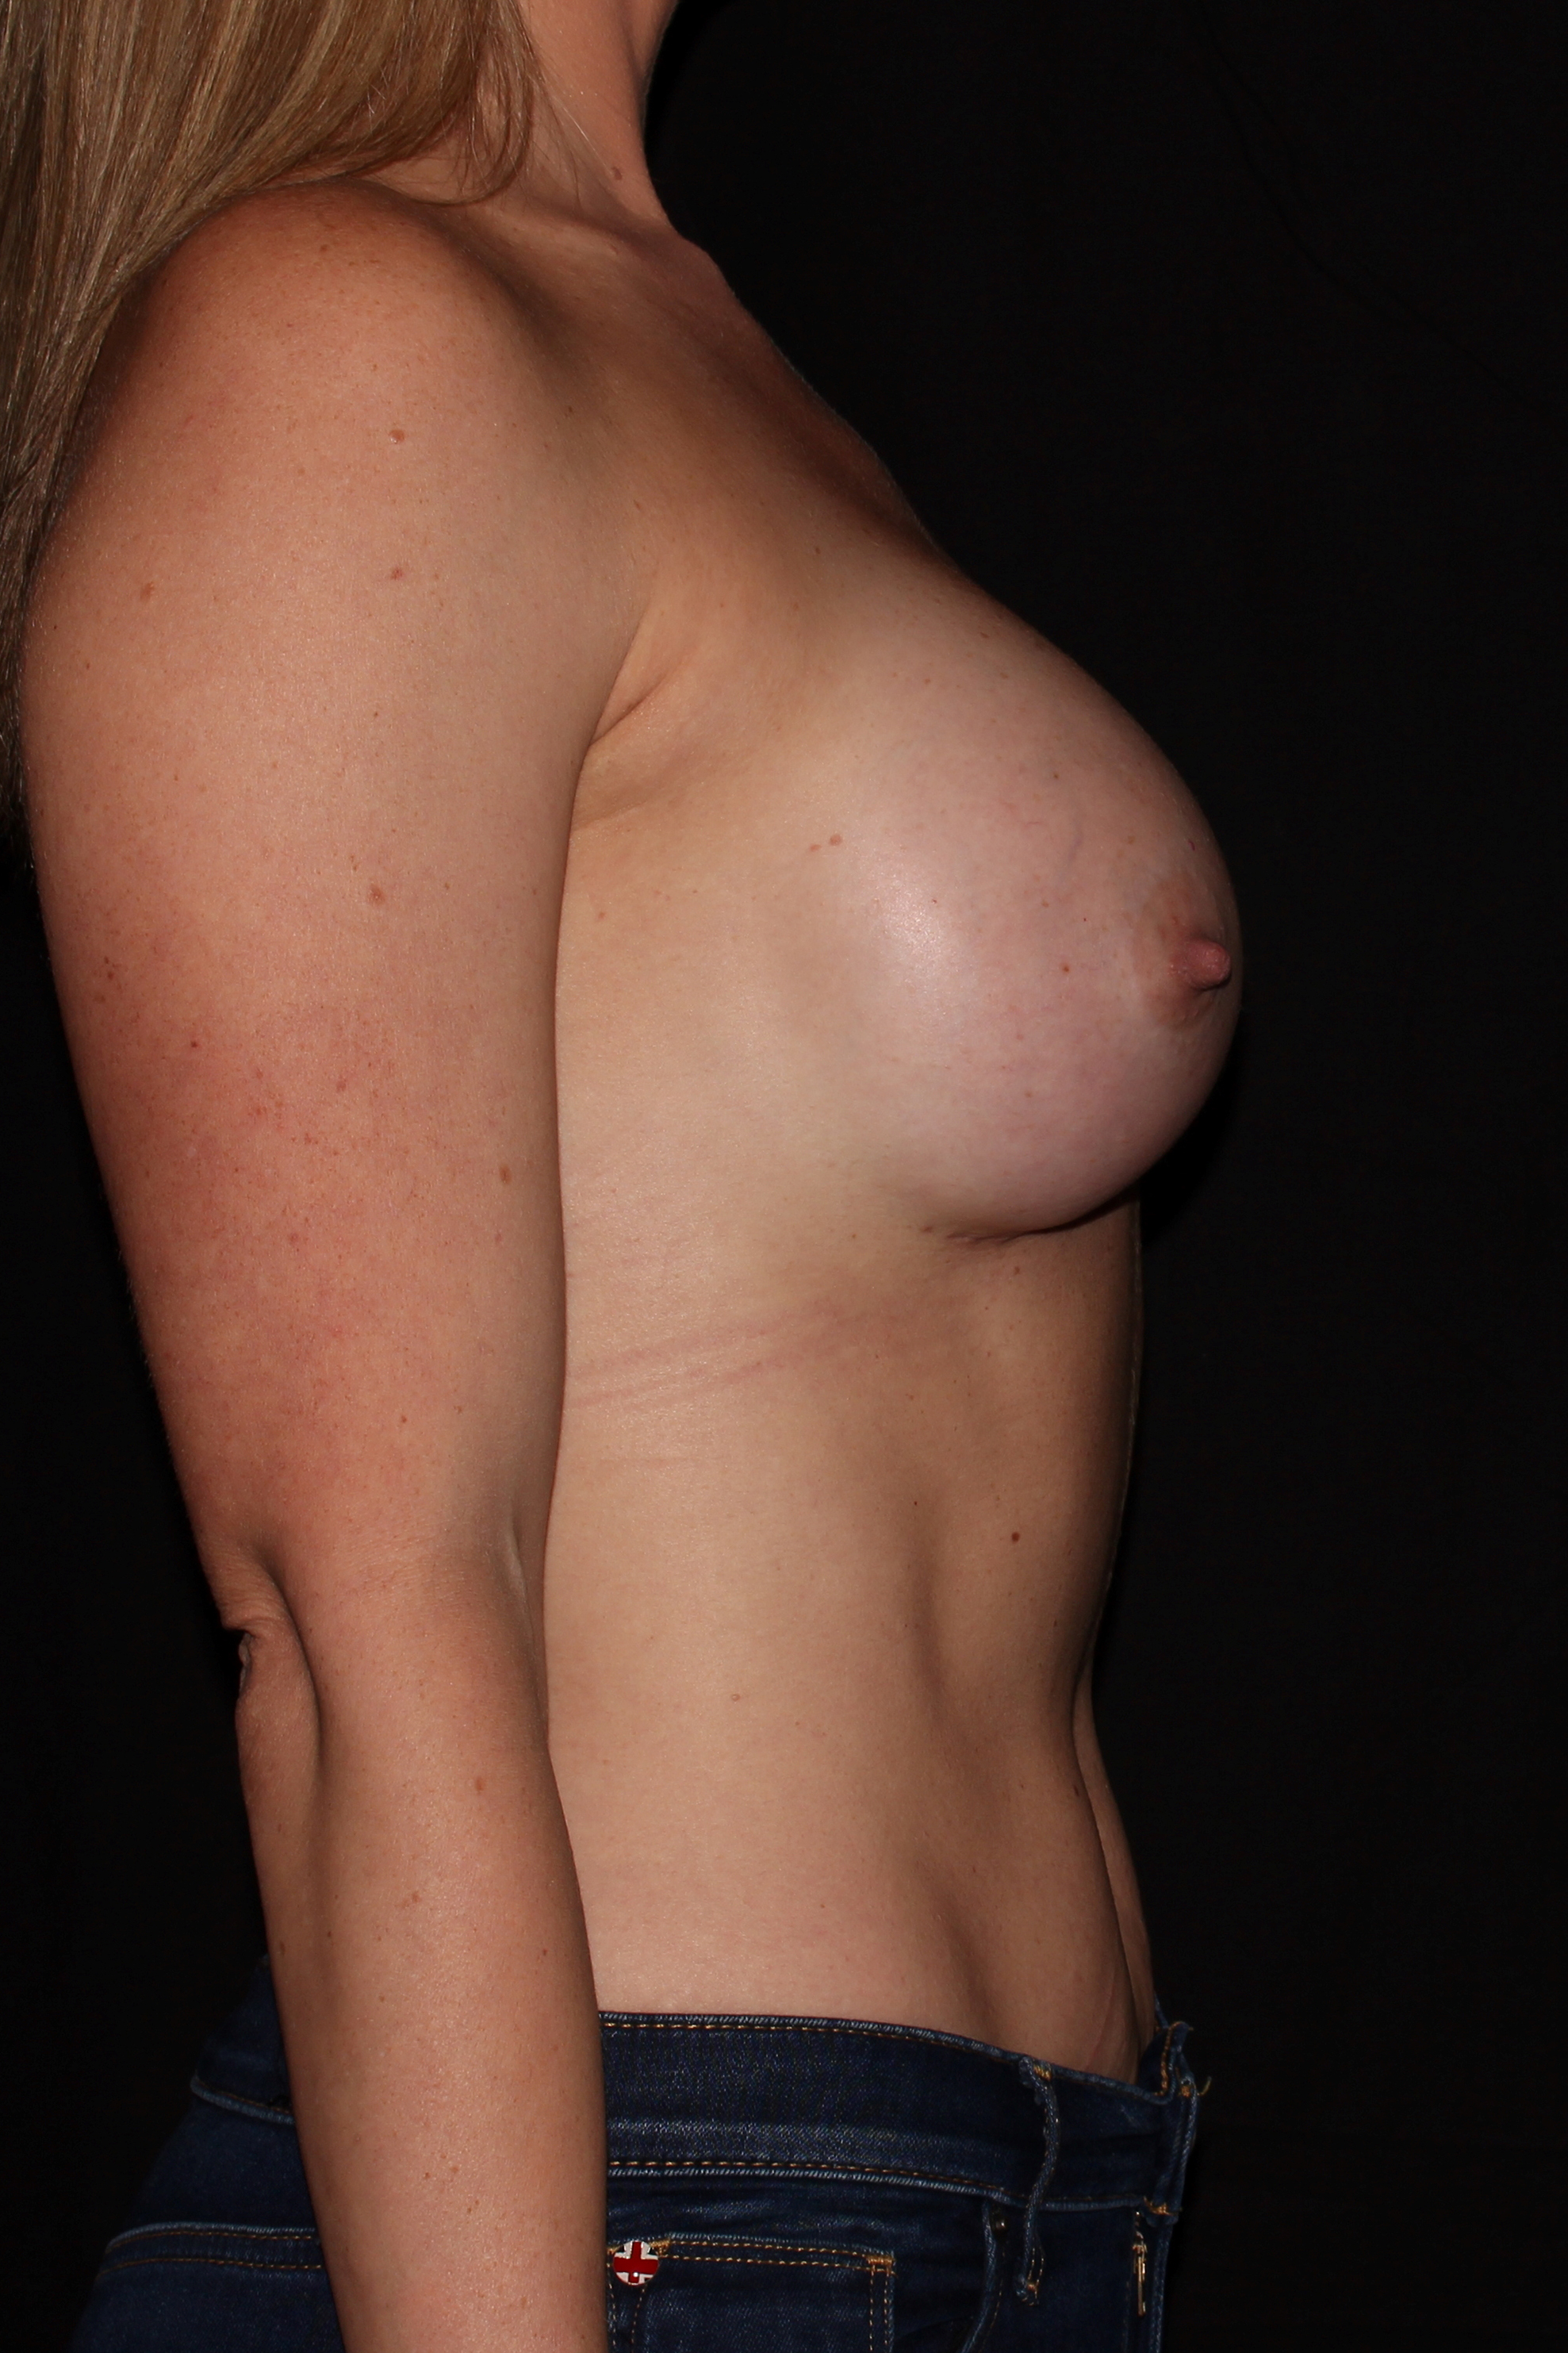 After Breast Augmentation - Side